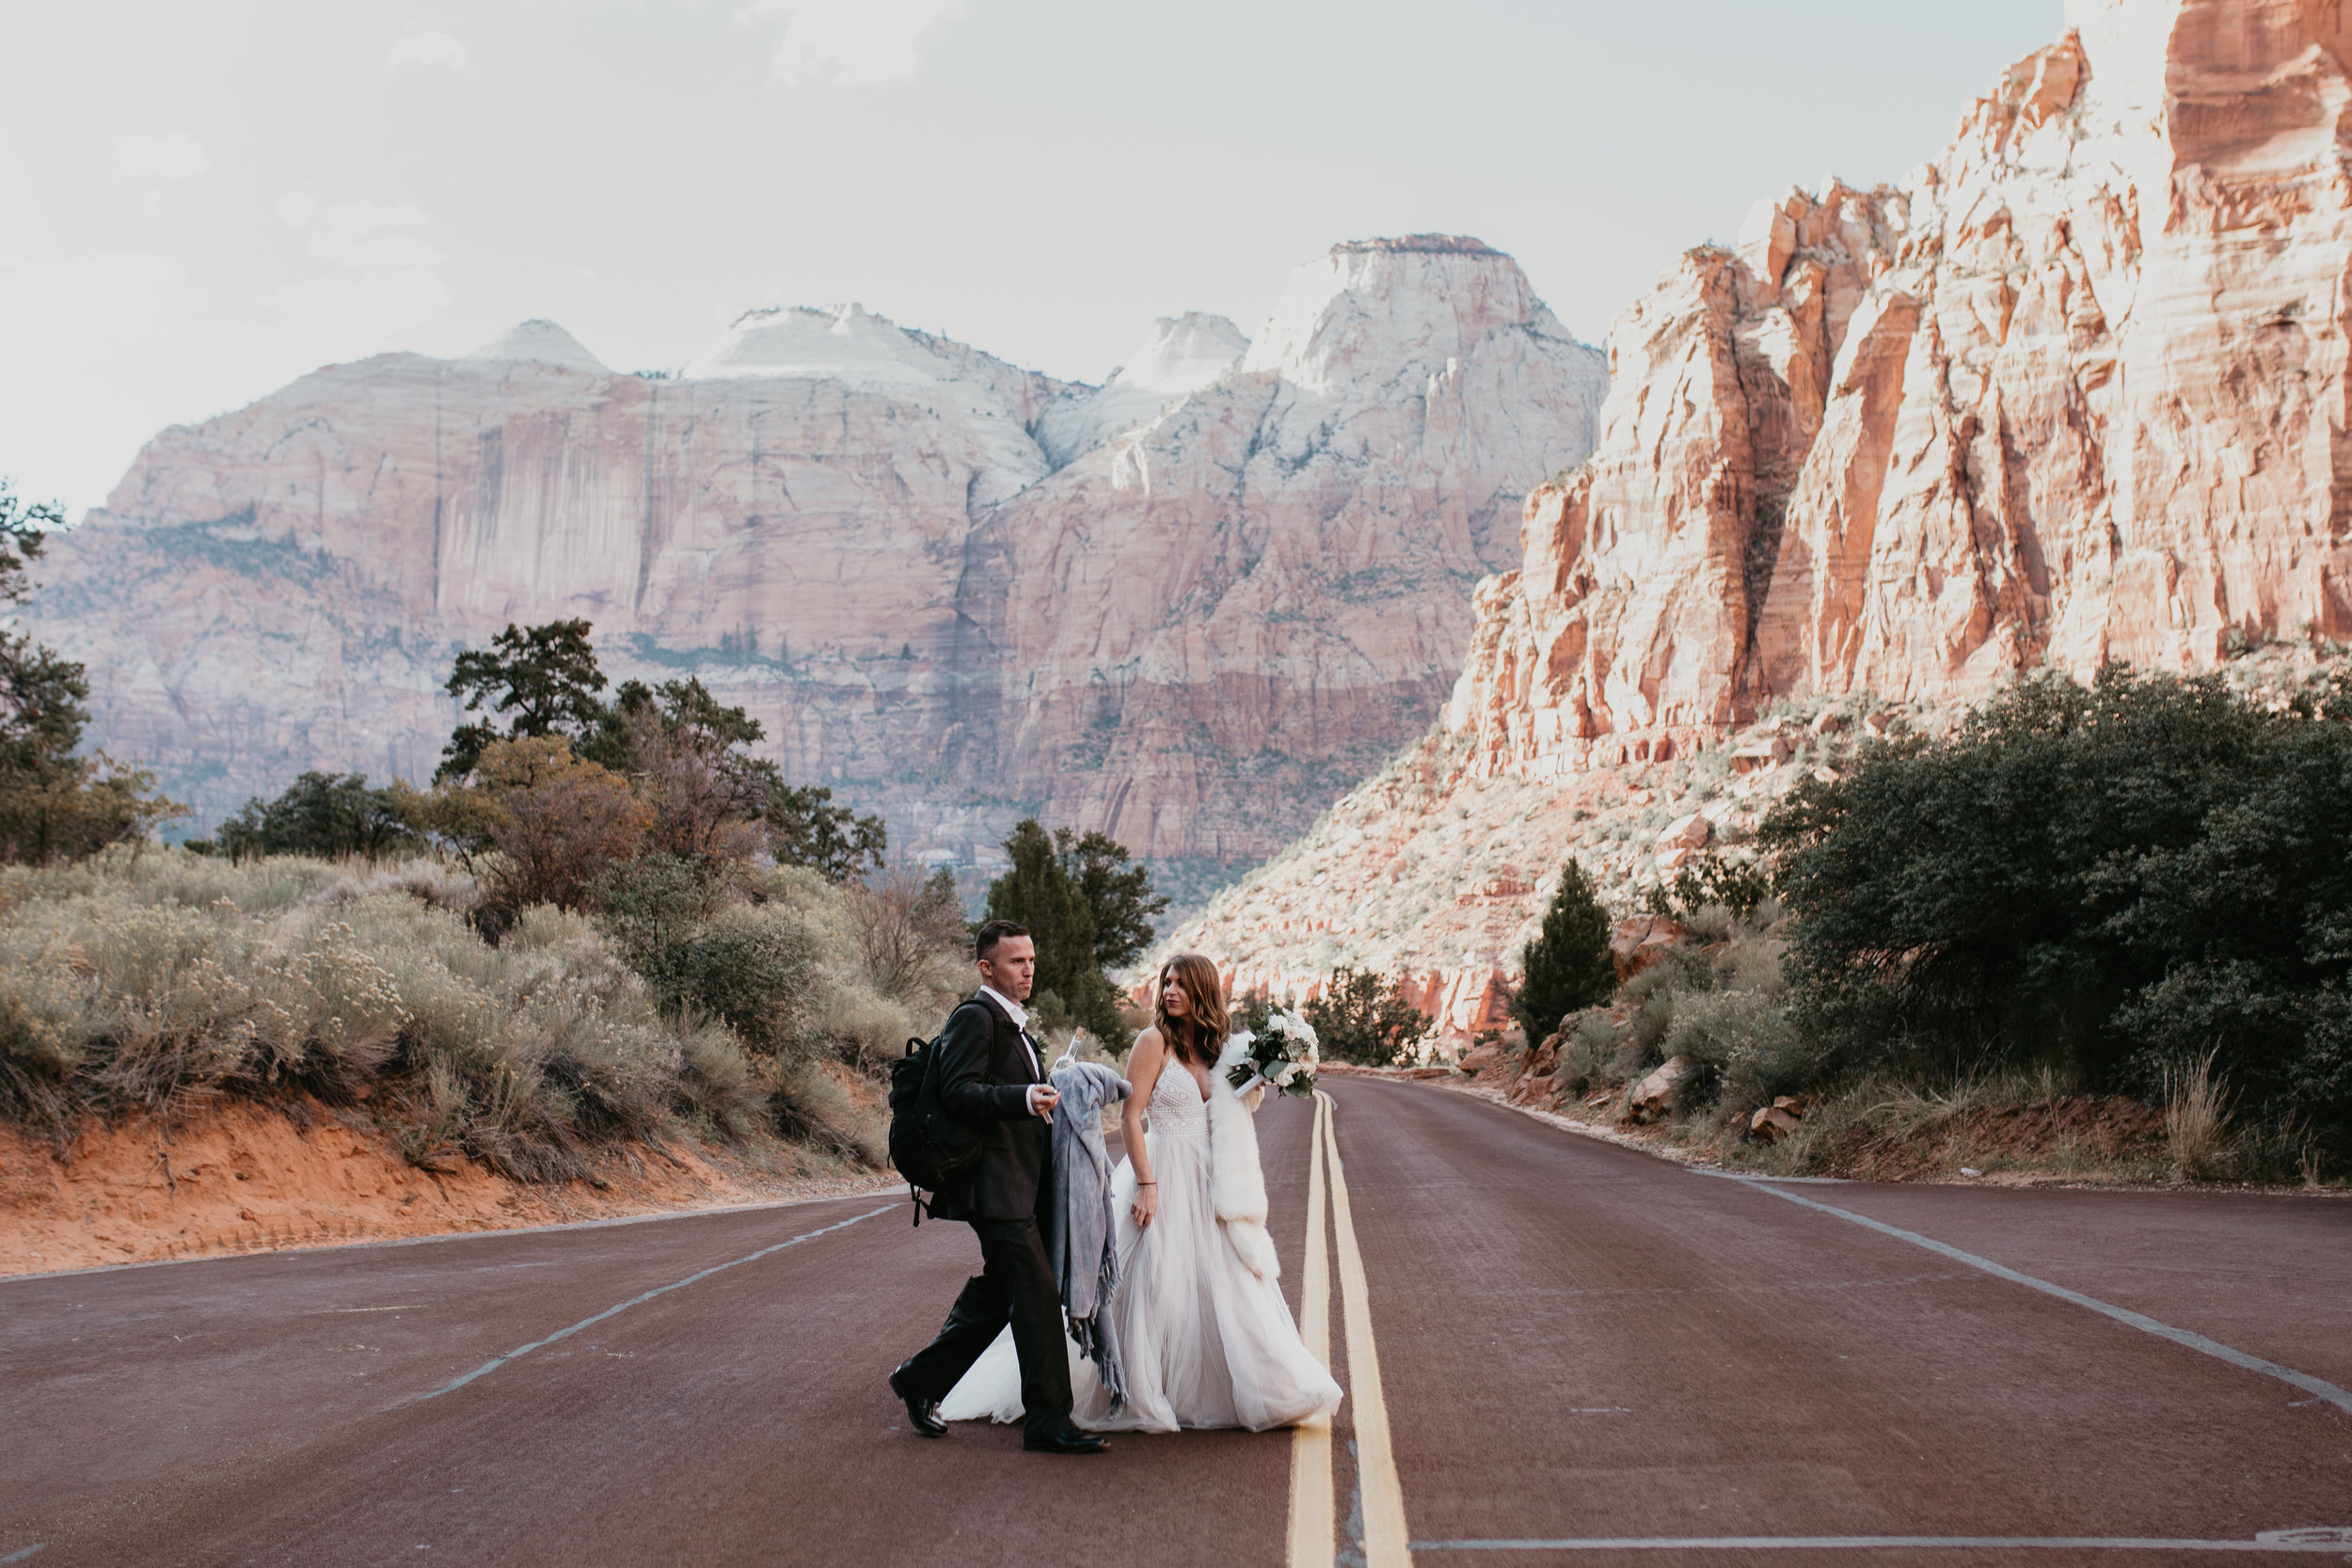 zion-national-park-elopement-photographer-adventure-adventurous-elopement-photographer-photography-in-national-parks-utah-red-rock-sunset-canyon-trail-destination-intimate-wedding-photos-8.jpg